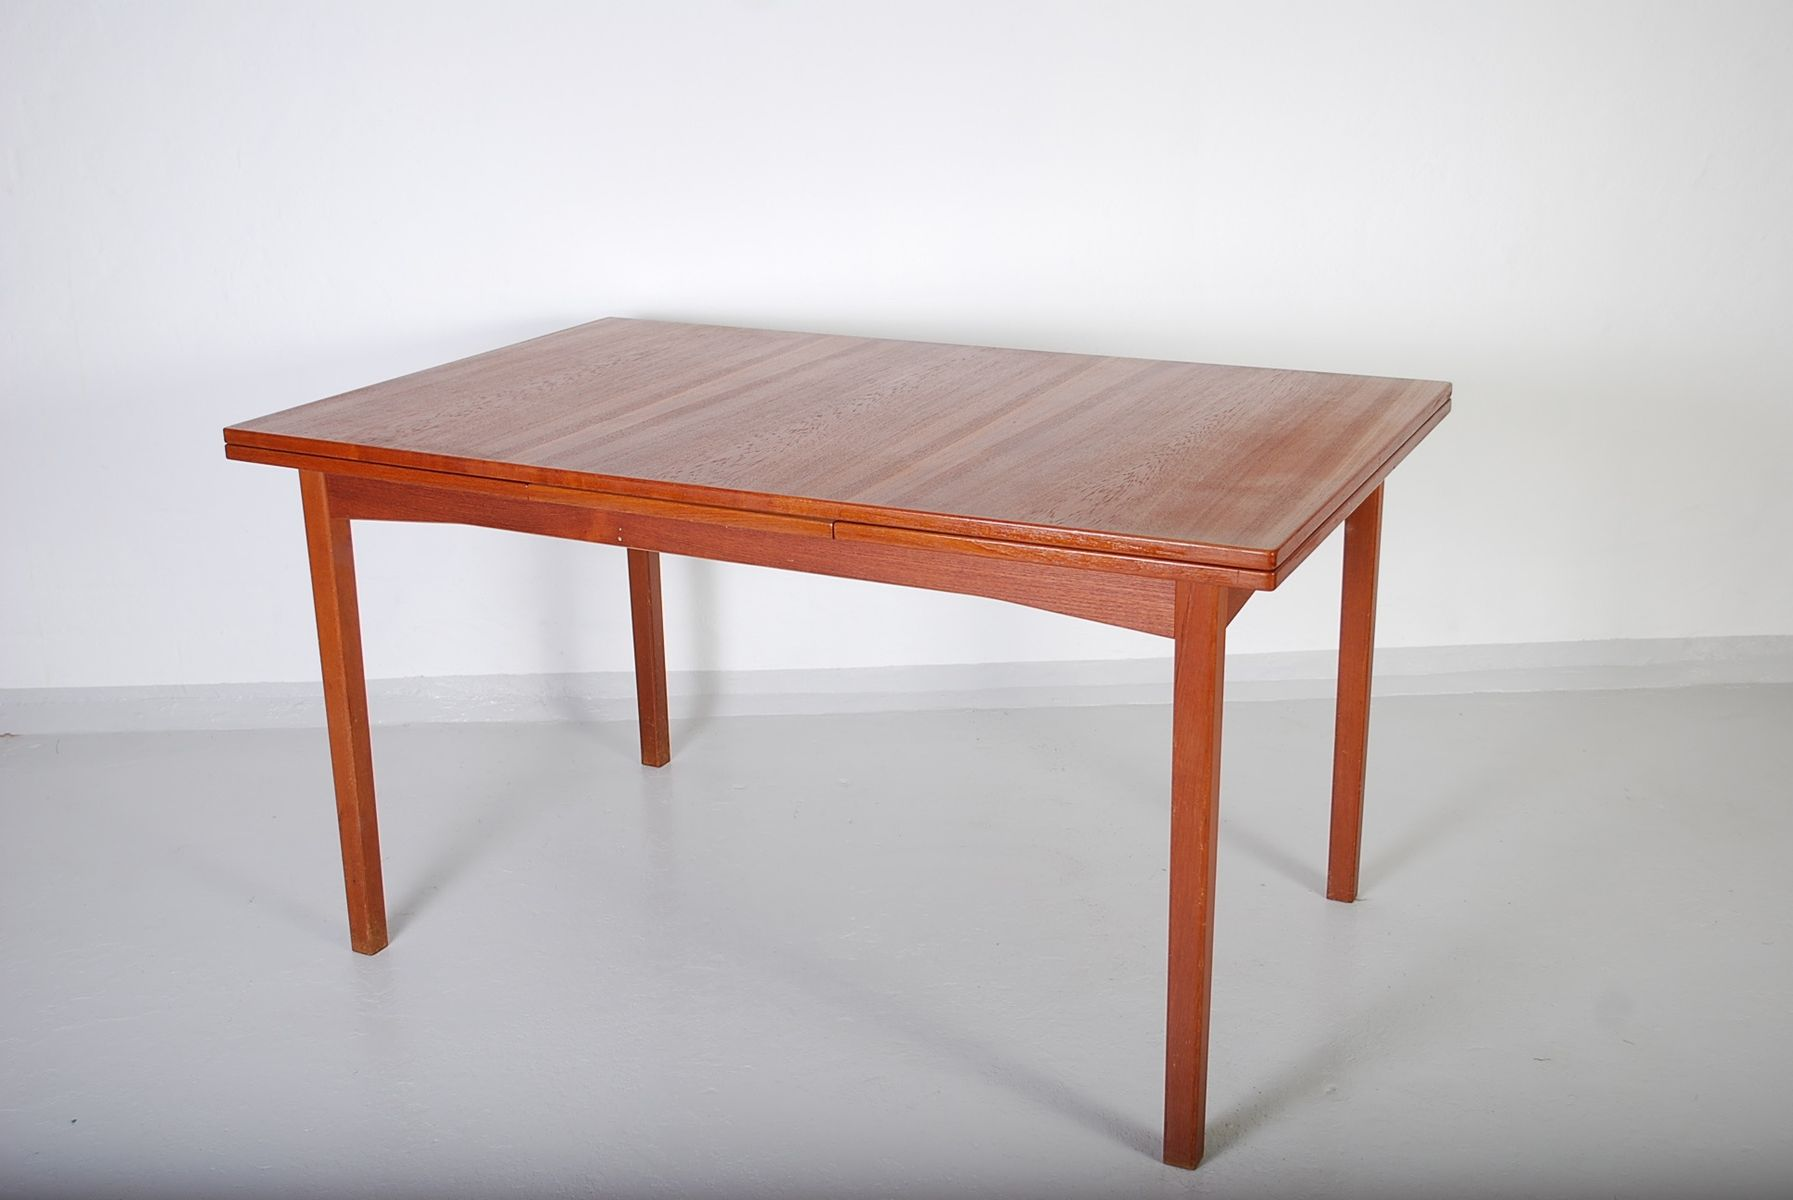 Vintage Teak Dining Table from Ulferts for sale at Pamono : vintage teak dining table from ulferts 3 from www.pamono.co.uk size 1792 x 1200 jpeg 81kB